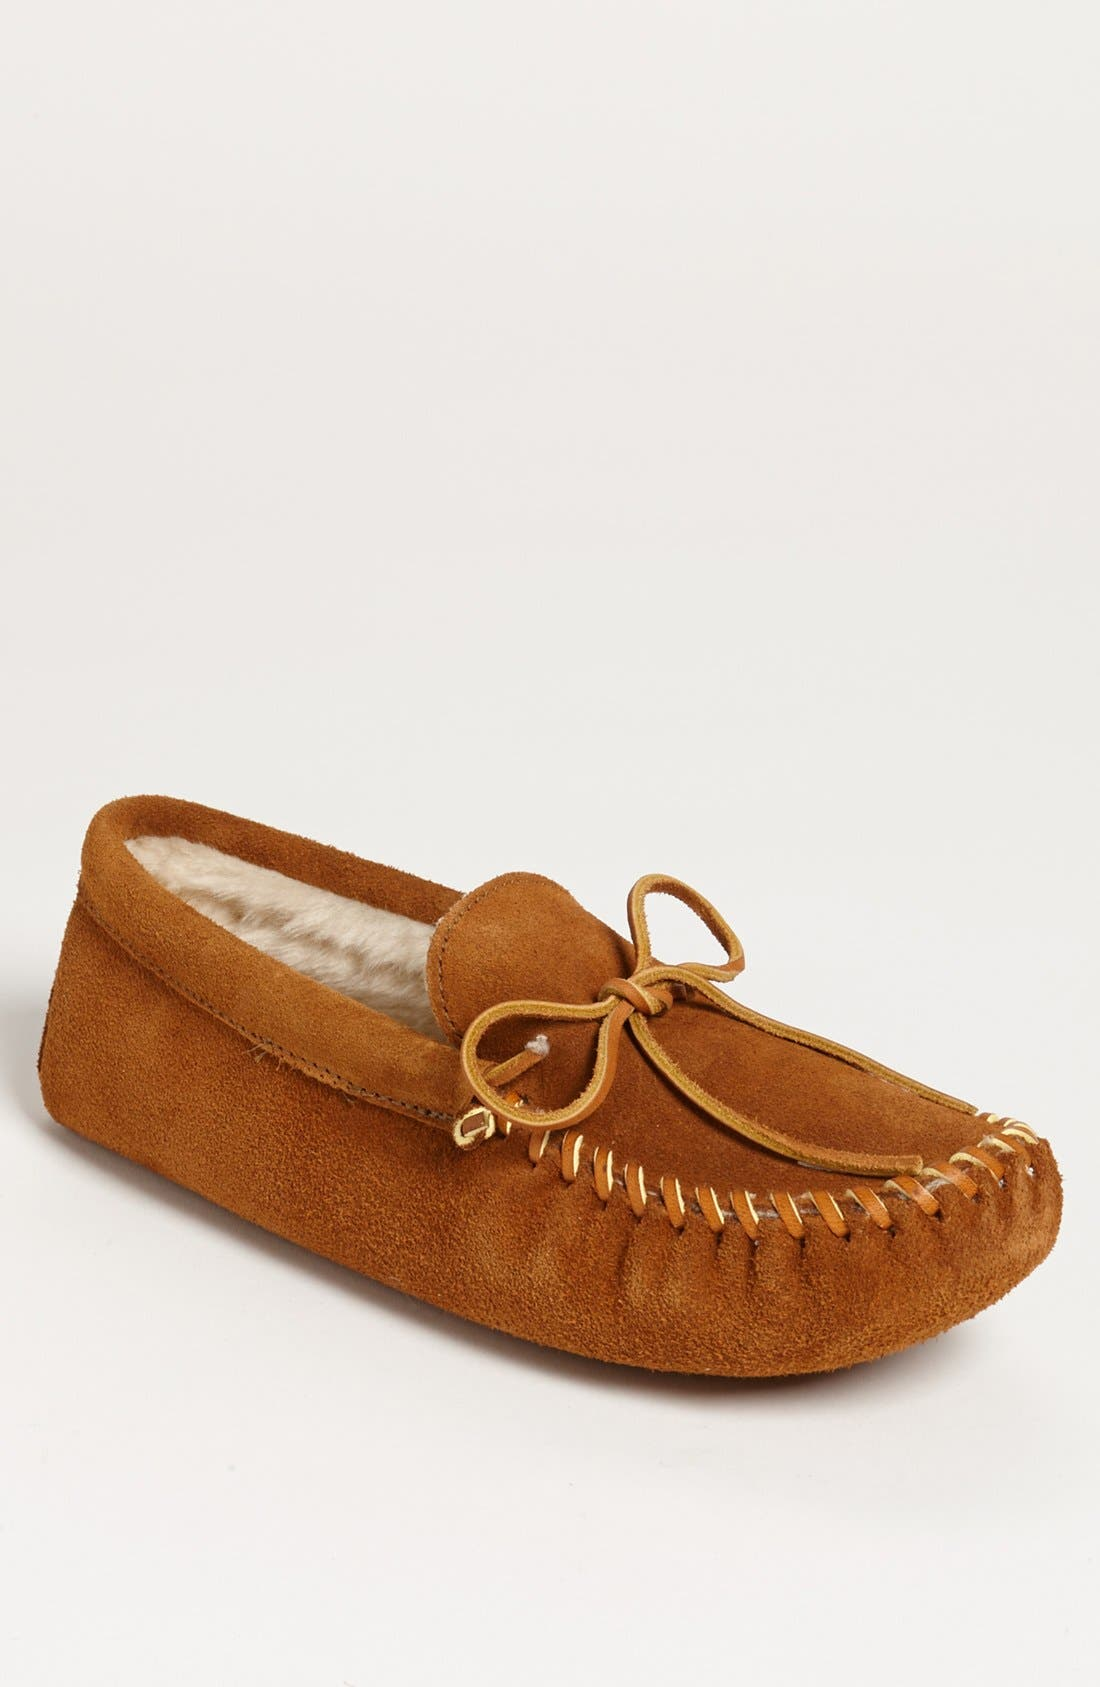 Alternate Image 1 Selected - Minnetonka Suede Moccasin with Faux Fur Lining (Men)